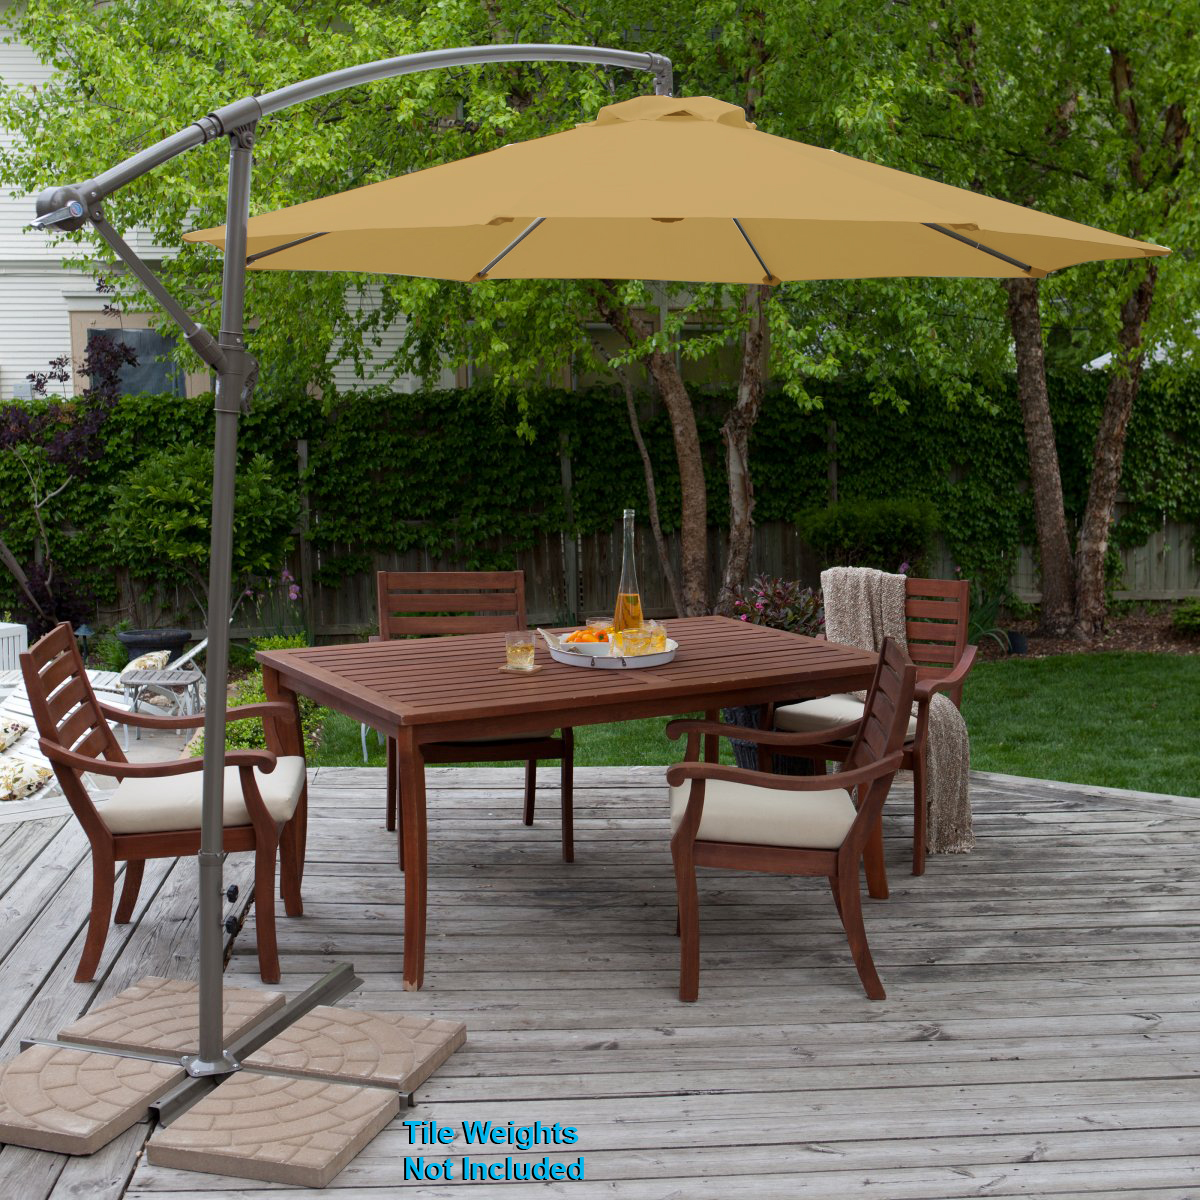 Clevr 10ft Offset Umbrella Outdoor Deck Patio Tilt Cantilever Hanging Canopy Tan